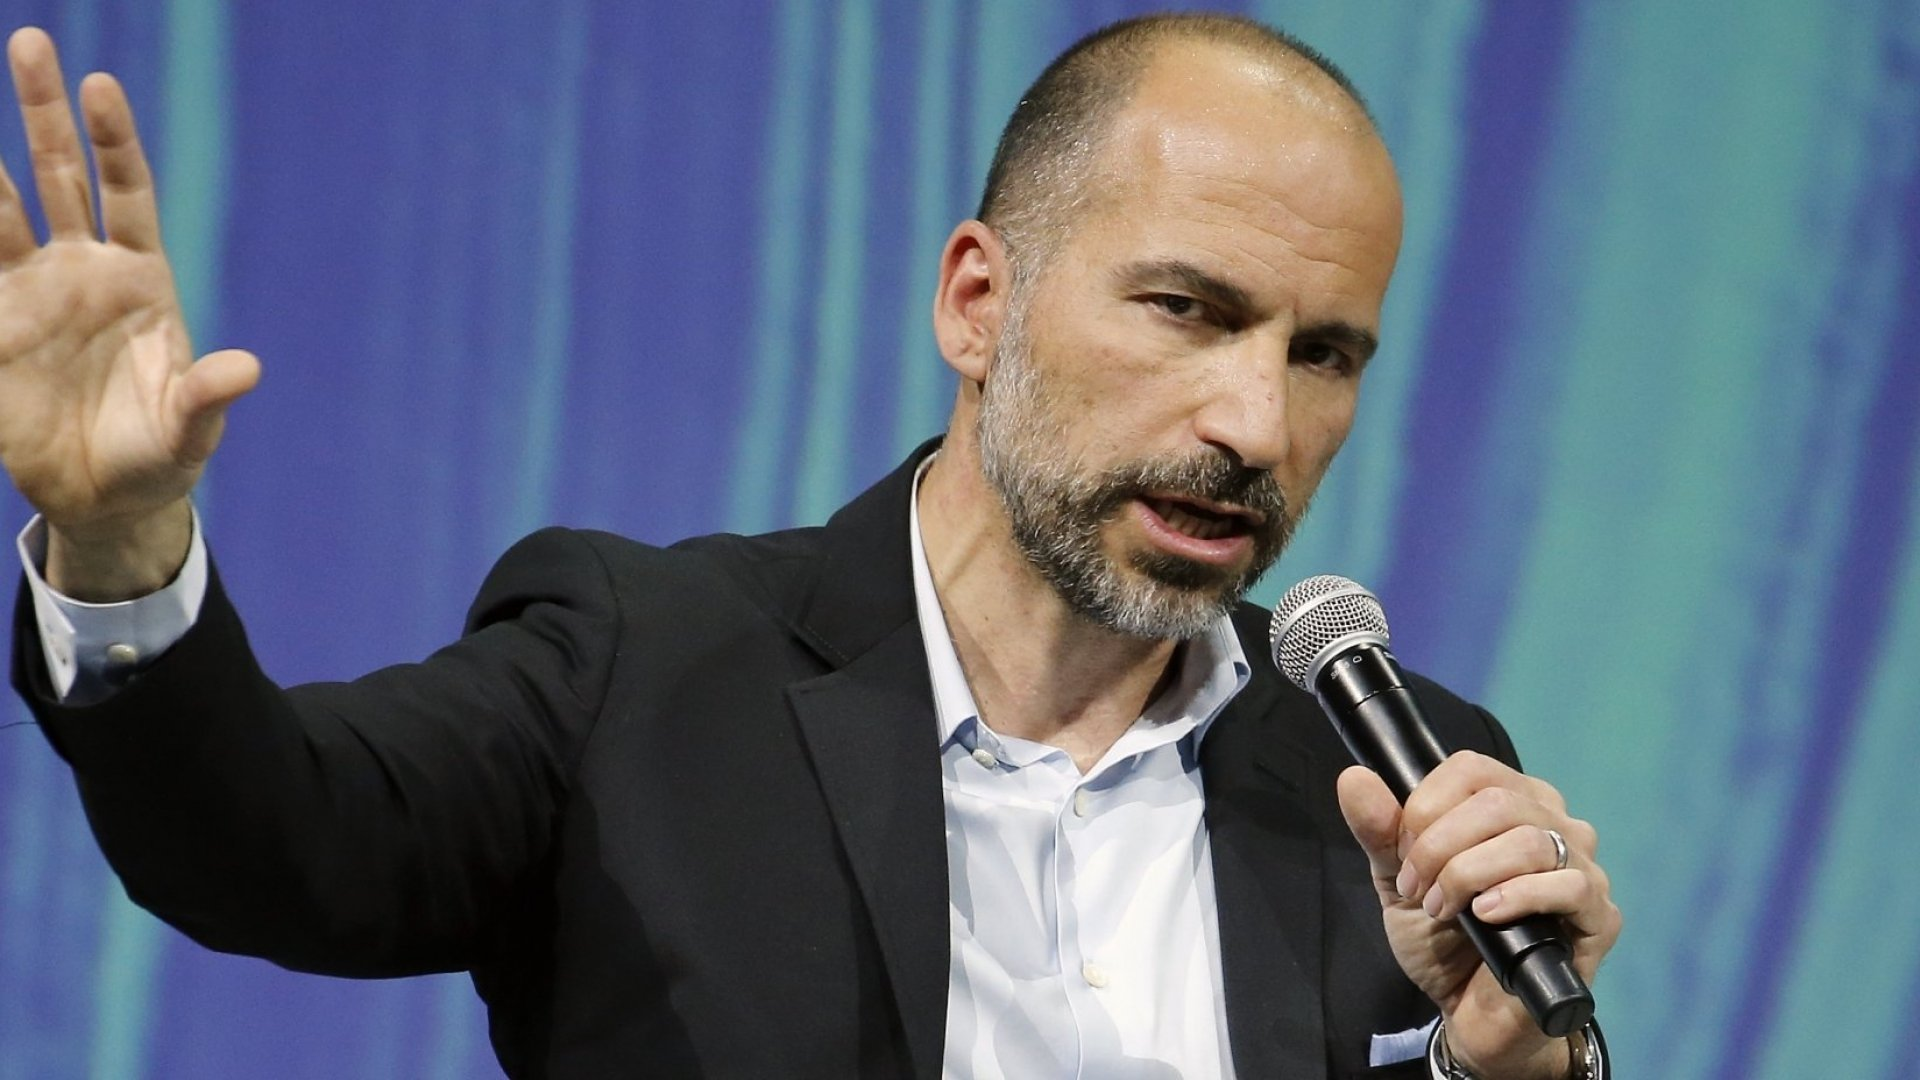 Why Uber Is Raising $600 Million Despite Netting a $2.46 Billion Profit in 1st Quarter